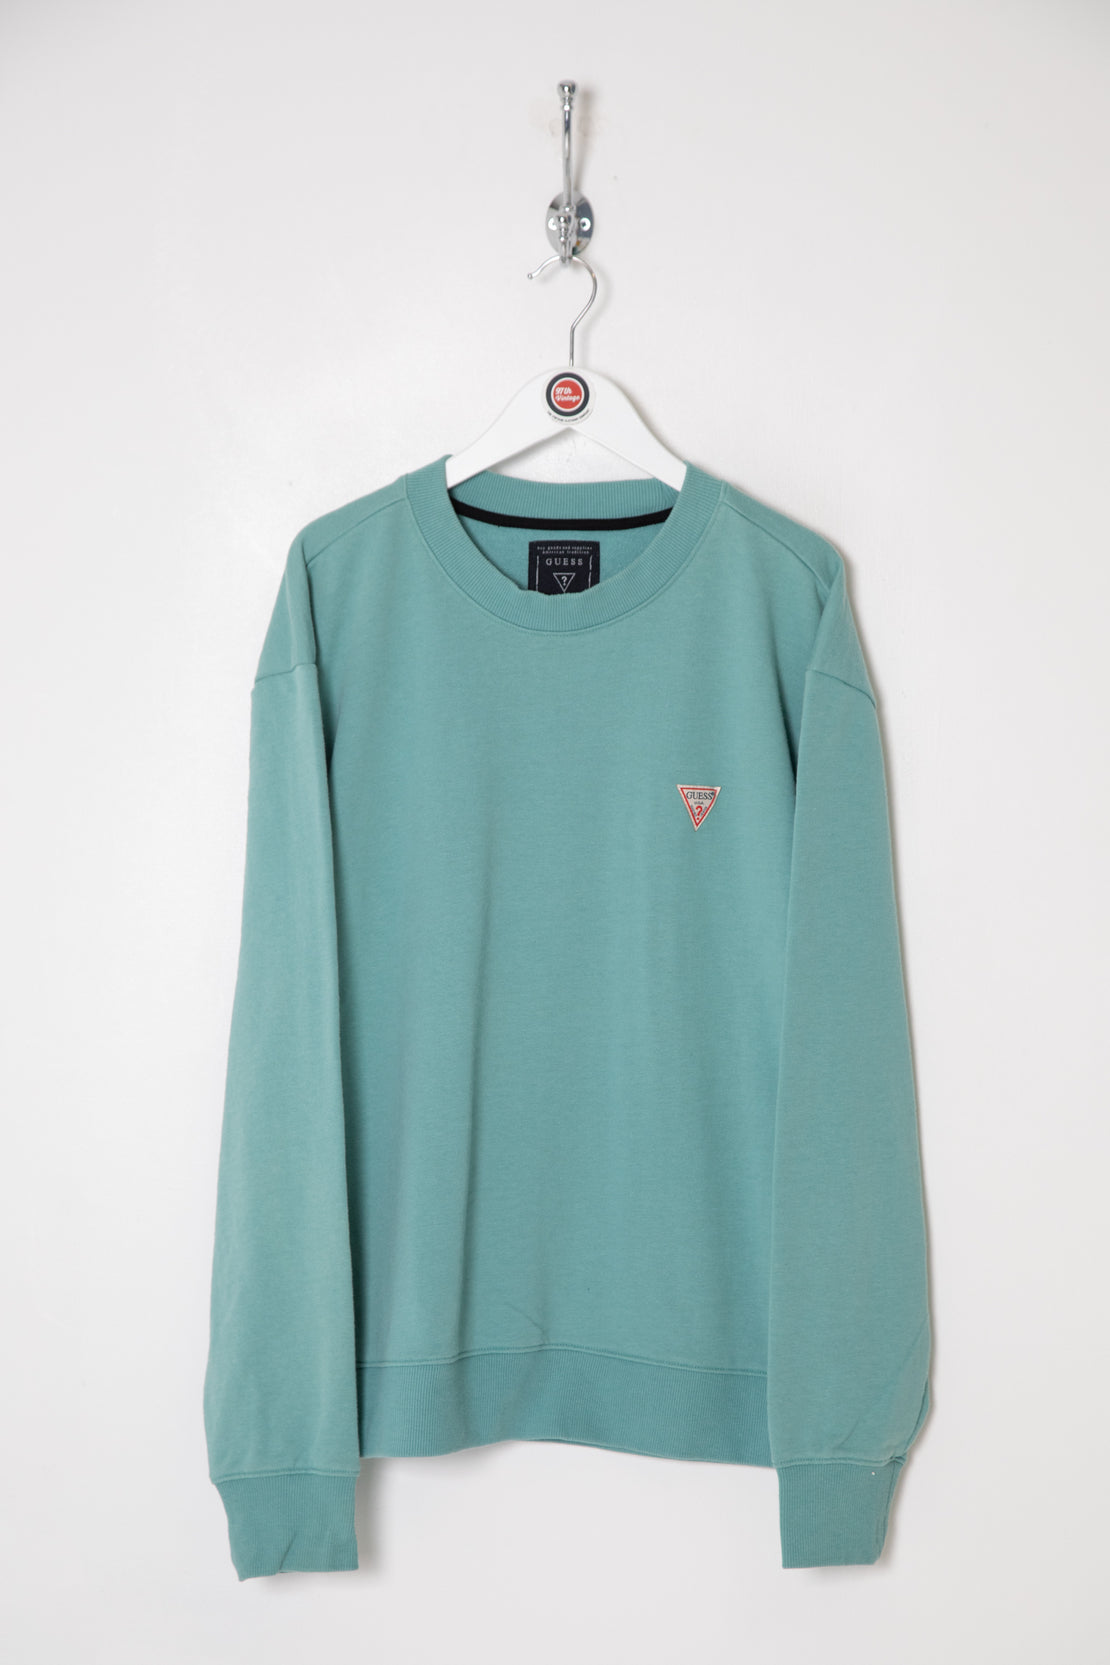 Guess Sweatshirt (L)